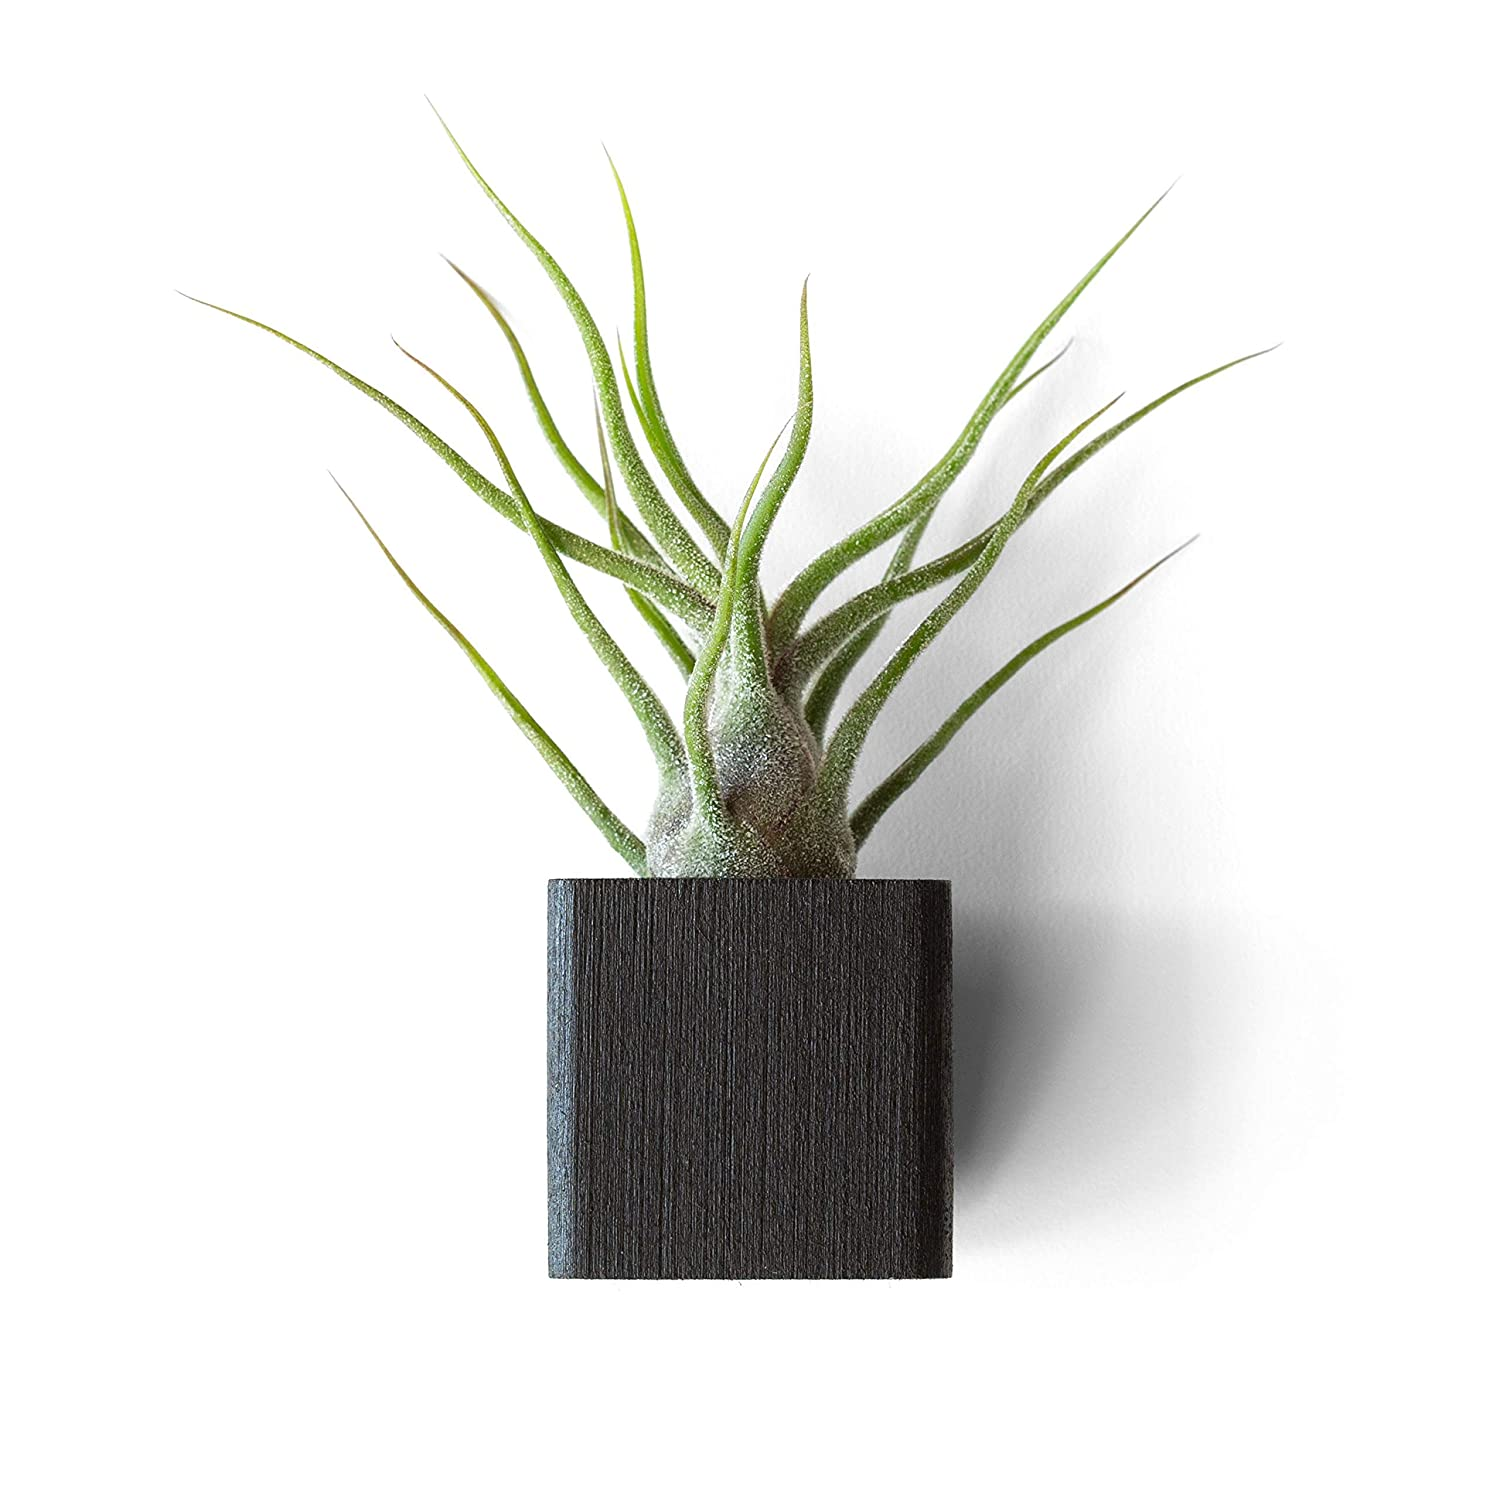 Black Refrigerator Plant Recommended Magnet Air Disp Airplant Max 61% OFF